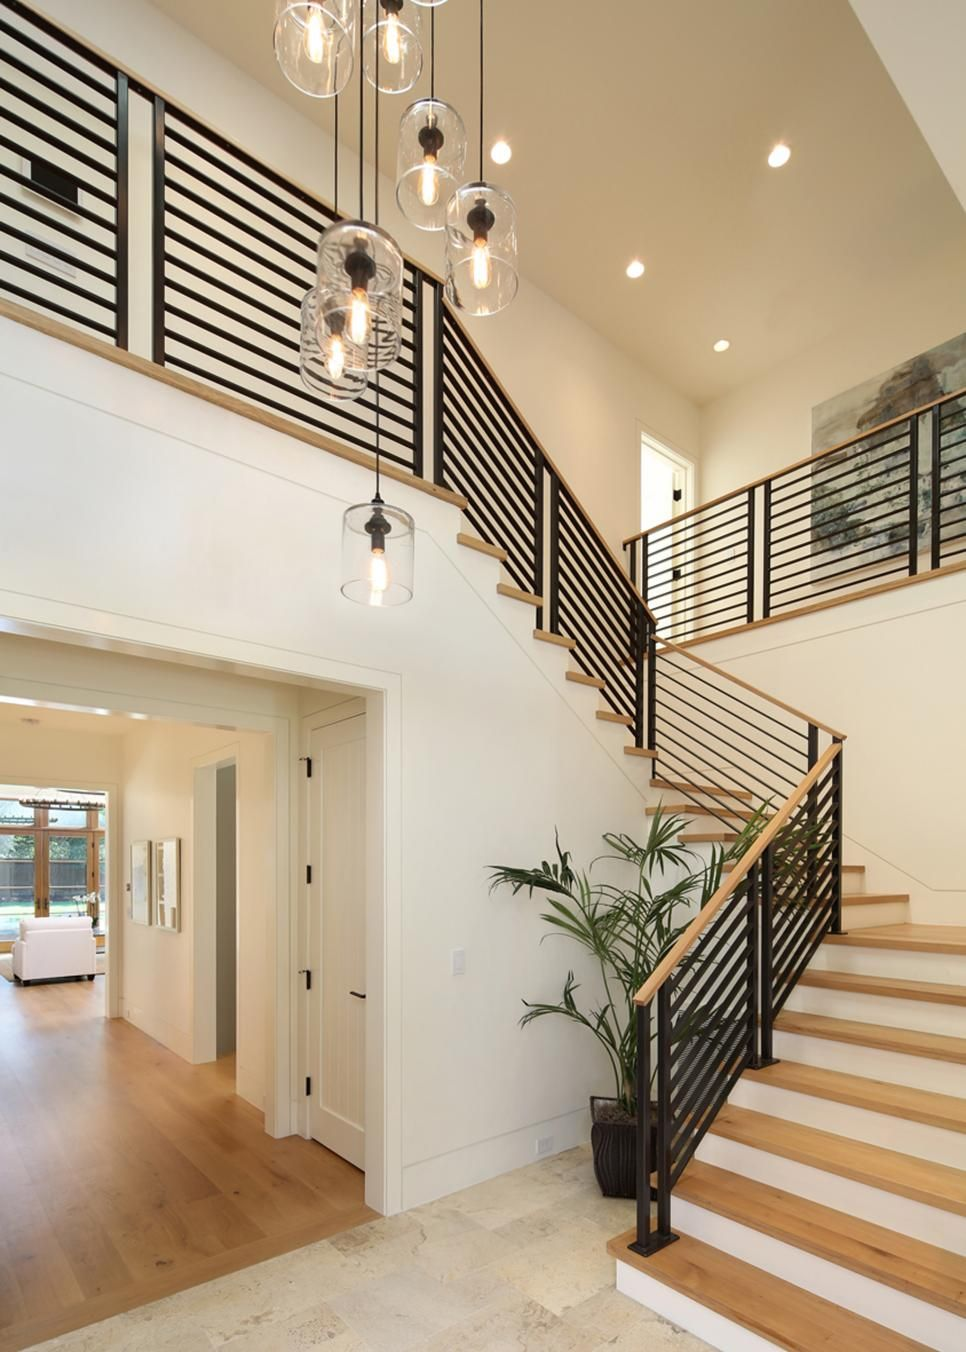 Home interior railings contemporary home with neutral palette and luxury touches  iron